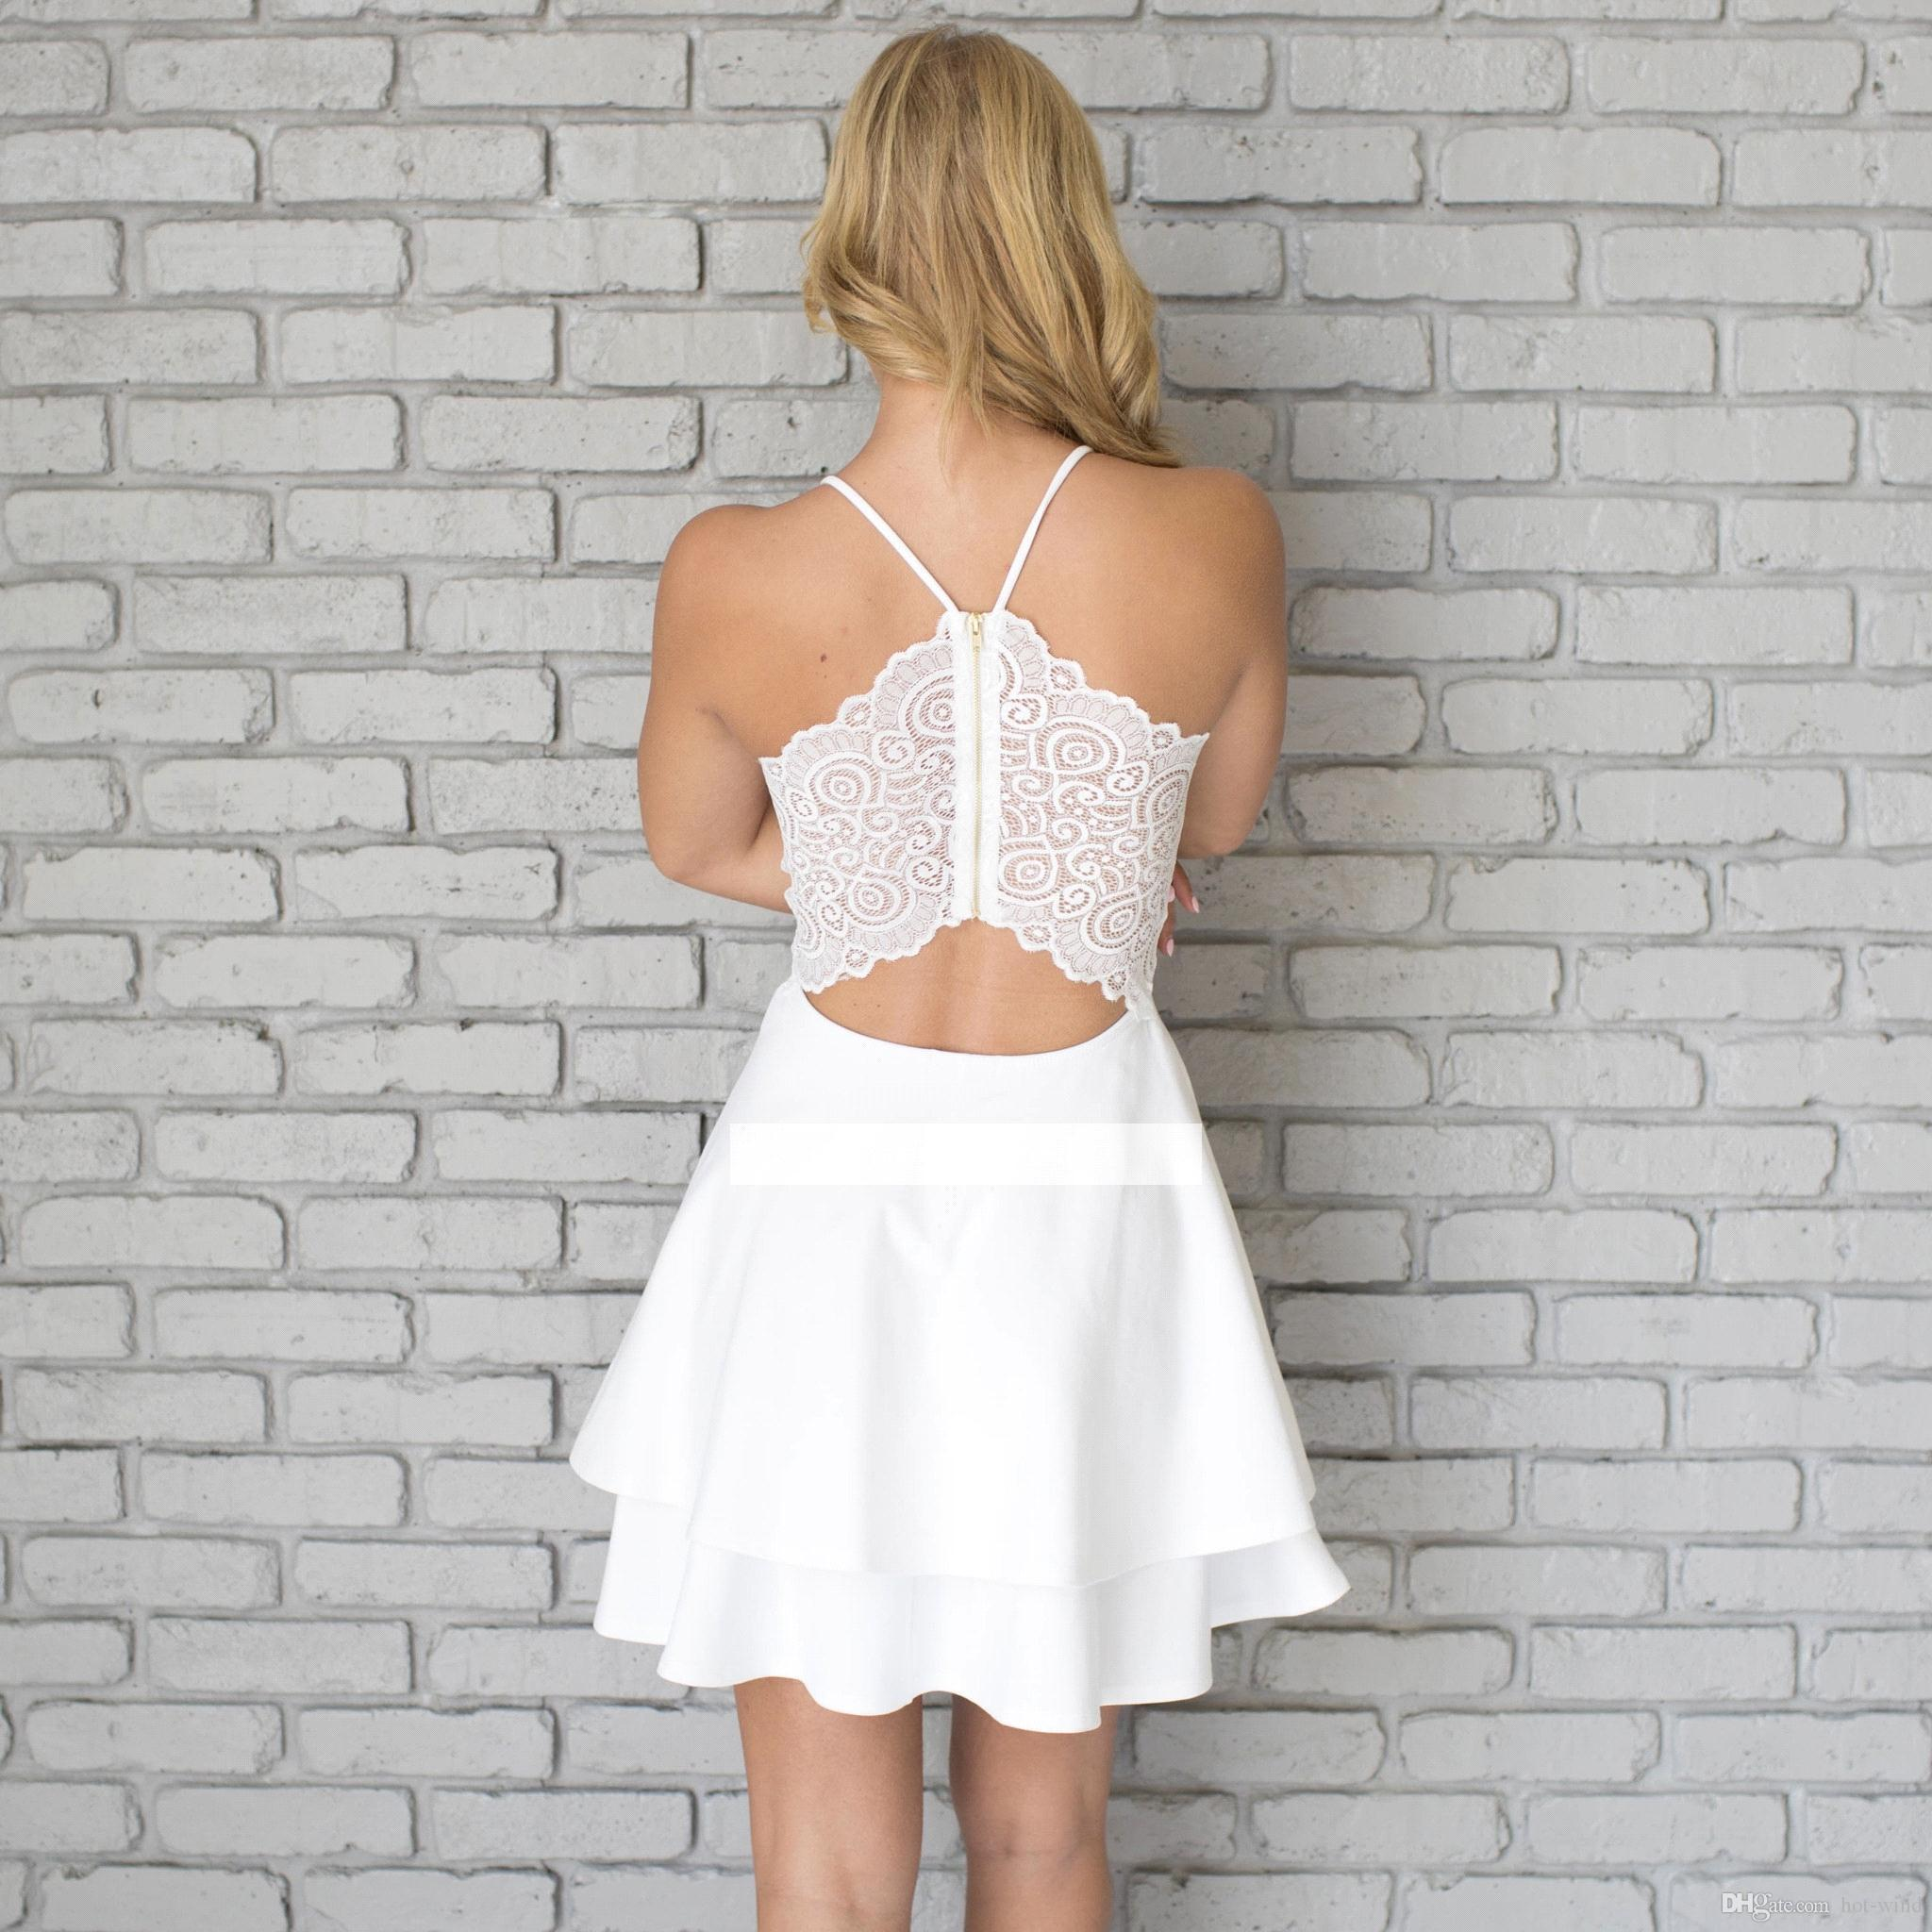 Little White Short Homecoming Dresses 2018 New Spaghetti Straps Zipper Back Lace Cocktail Party Dresses Short Prom Gowns Robe De Soiree